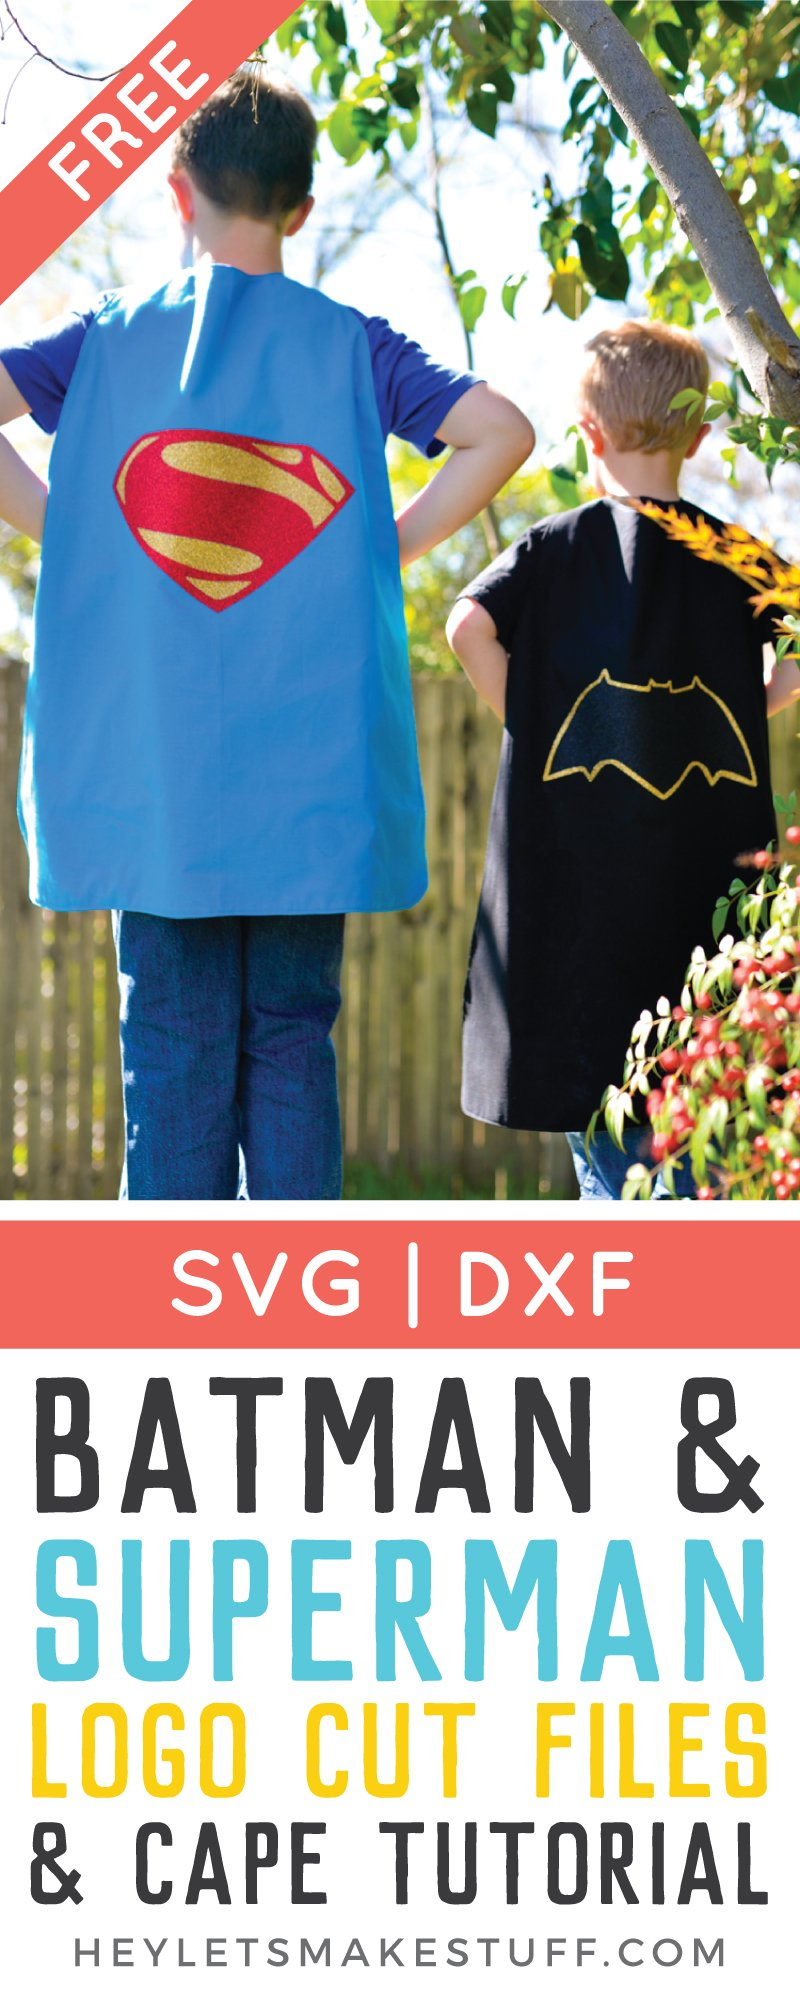 The Batman and Superman logos got an edgy update for the new movie! Get the free cut file for the new logos, plus learn how to sew a quick cape.